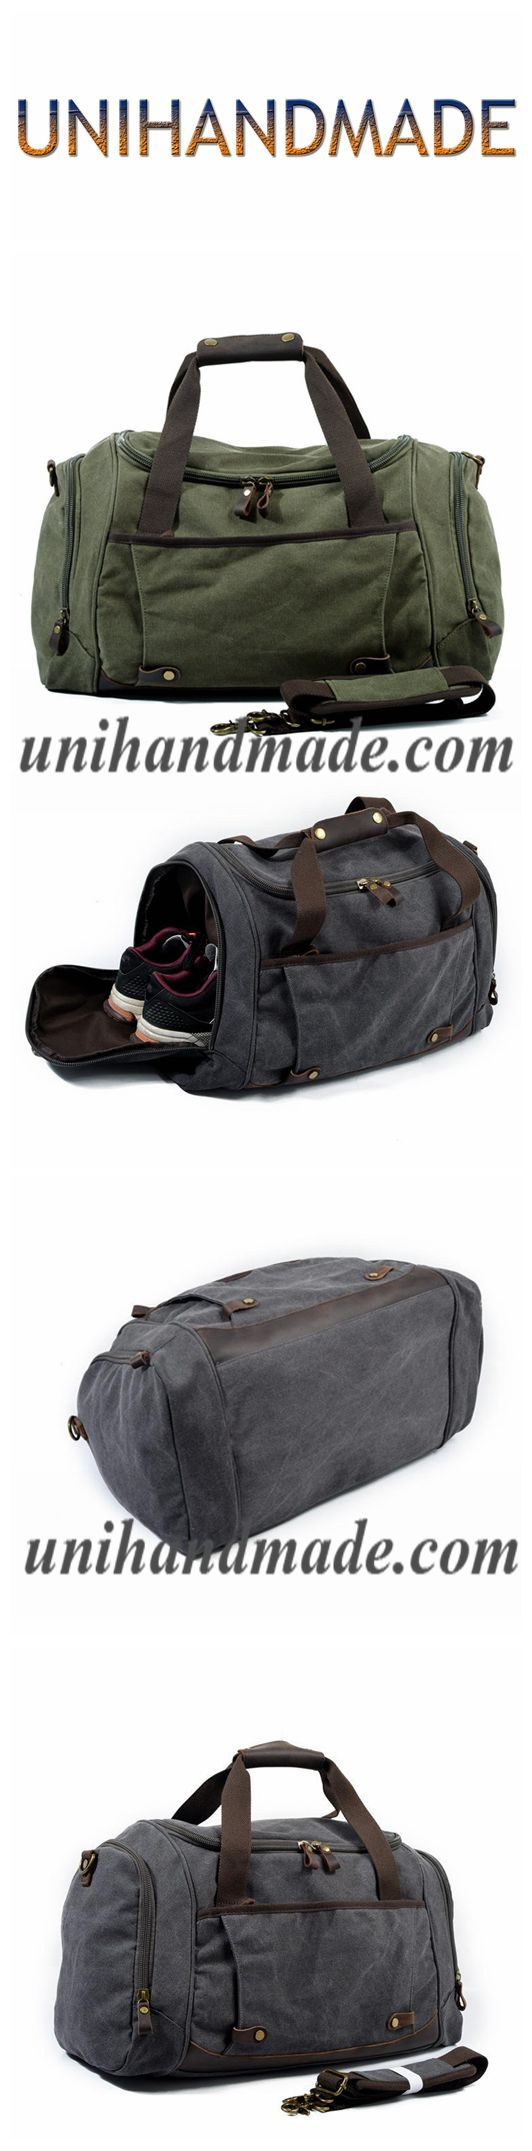 Black Leather Duffle Bag  Men Small Shoulder Travel Weekender Gym Sports Carry On Handmade Overnight Clothes Holdall Custom Engraved Gift